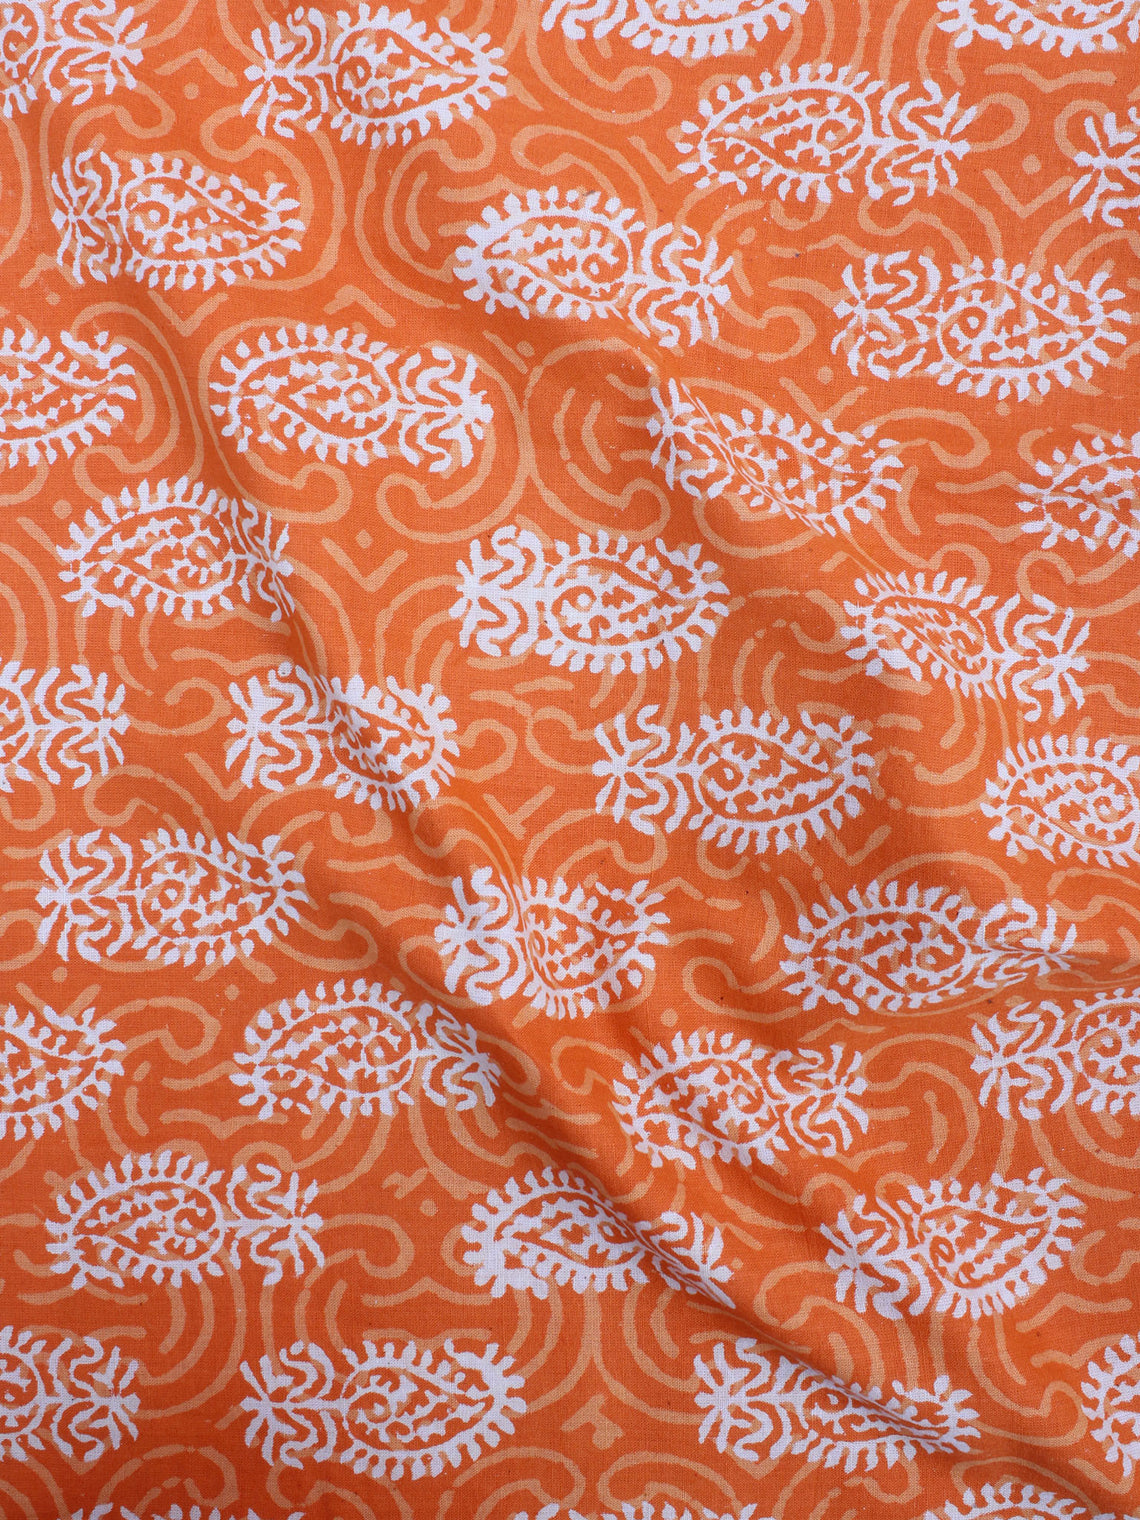 Orange Beige Bagru Hand Block Printed Cotton Fabric Per Meter - F0916182